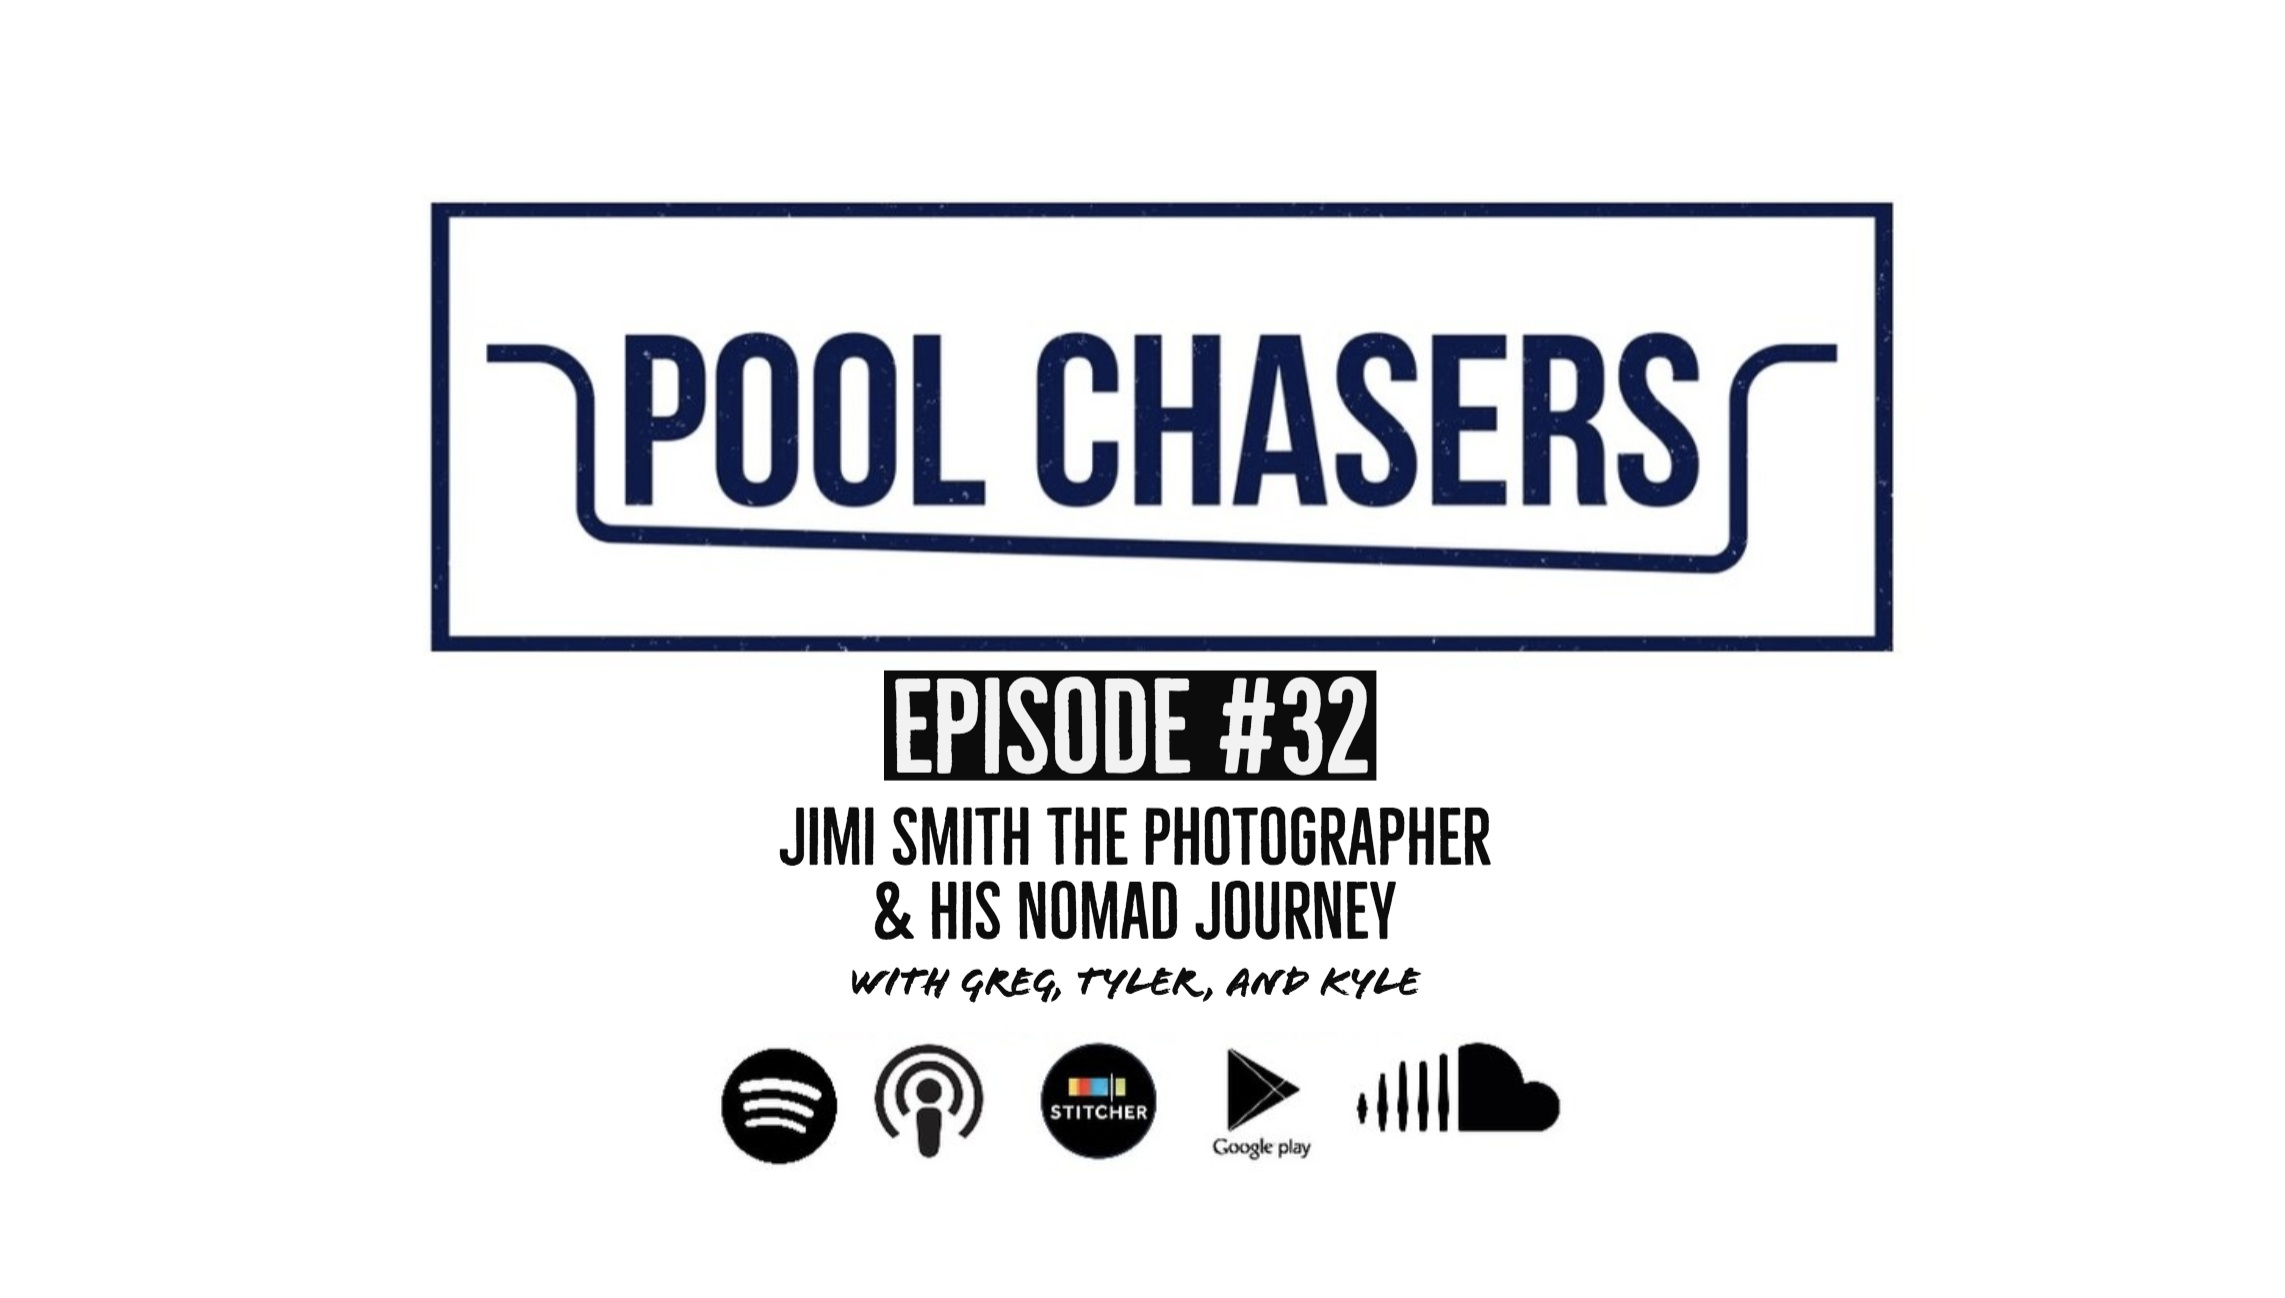 Pool+Chasers+Jimi+Smith+Photography+32